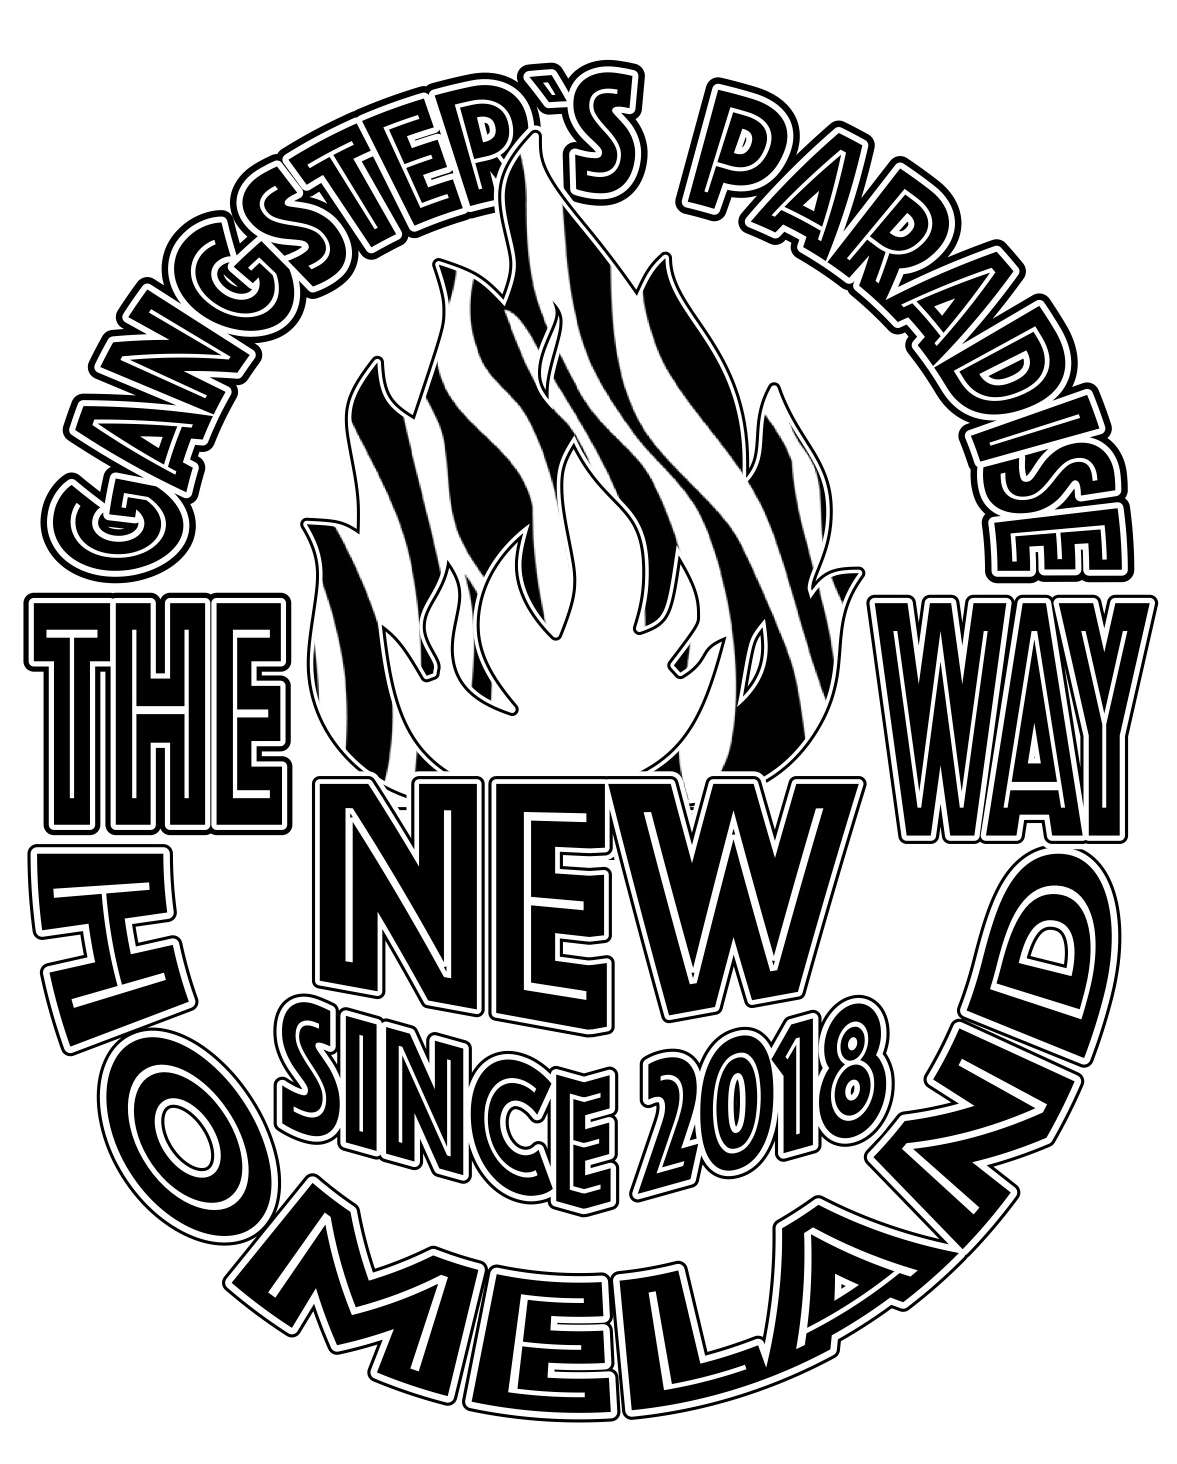 GANGSTER`S PARADISE THE NEW WAY SINCE 2018 HOMELAND